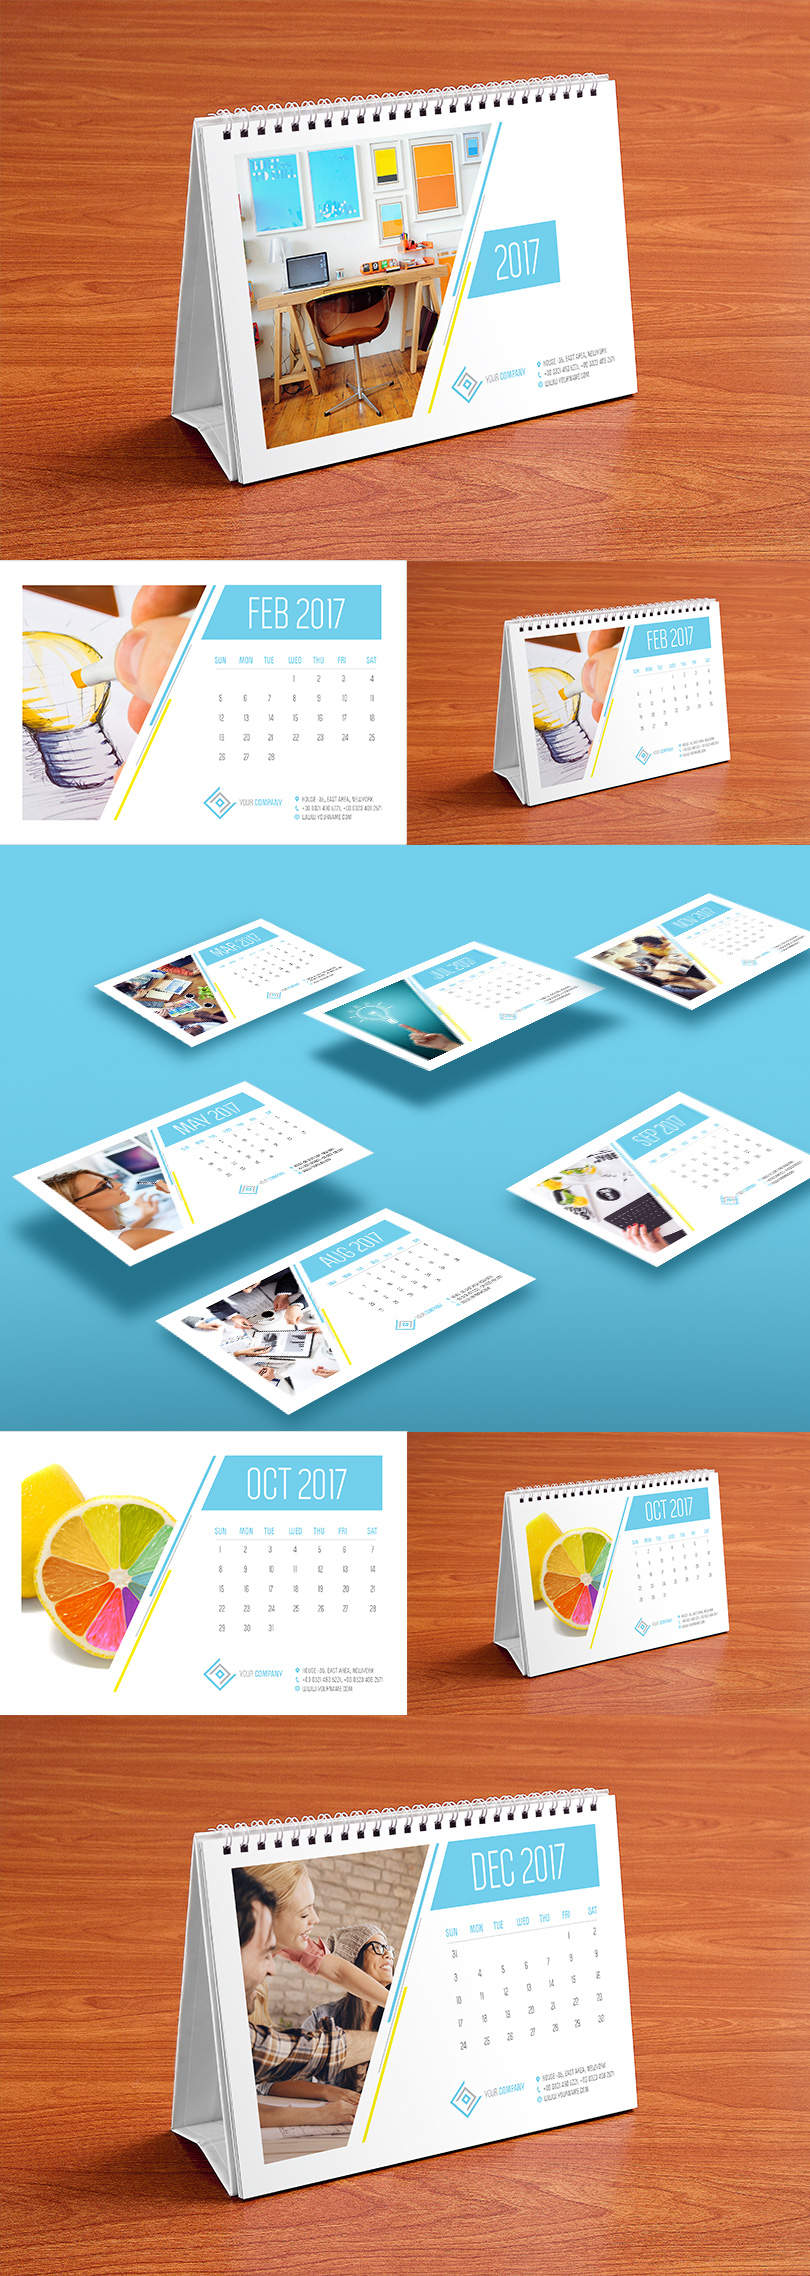 table-calendar-design-template-and-mock-up-psd